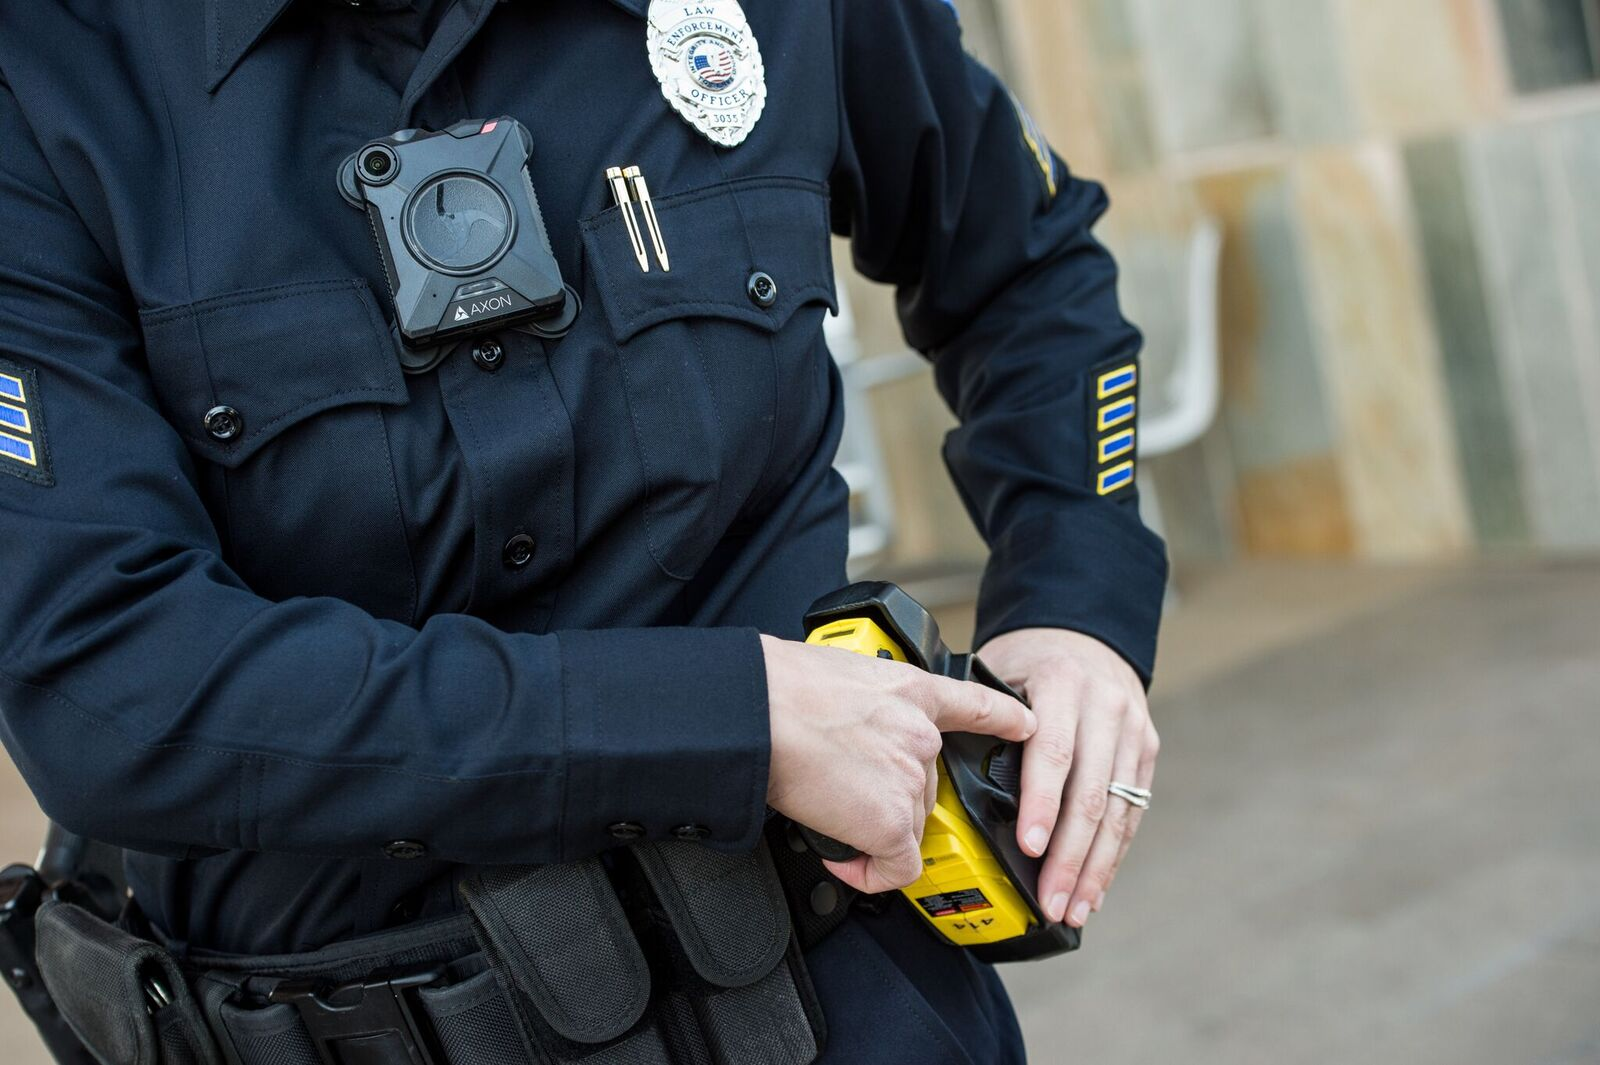 Axon's new body cameras add greater law enforcement connectivity to the security equation